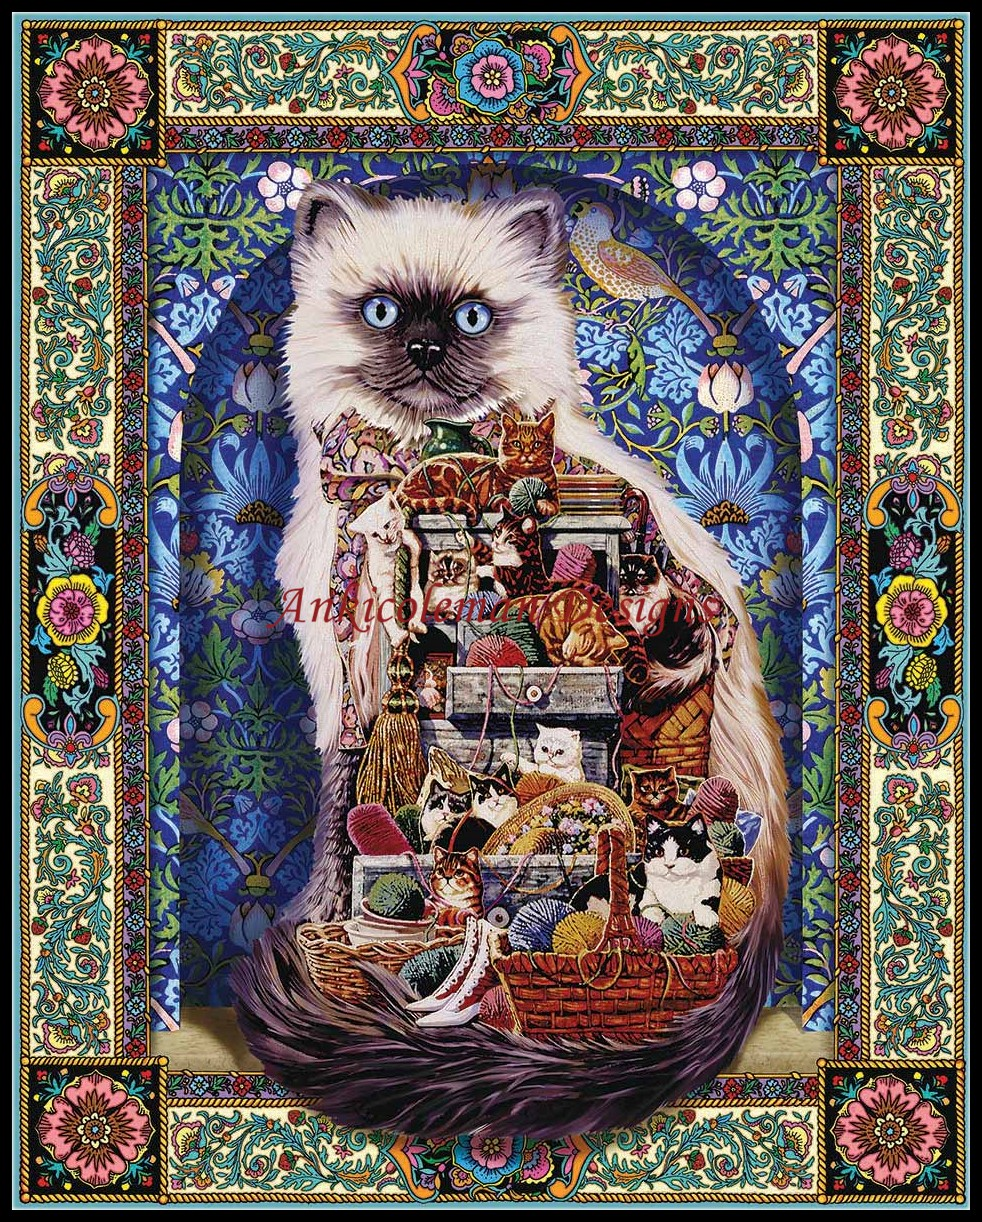 Cats Galore - Counted Cross Stitch Kits - DIY Handmade Needlework for Embroidery 14 ct Cross Stitch Sets DMC ColorCats Galore - Counted Cross Stitch Kits - DIY Handmade Needlework for Embroidery 14 ct Cross Stitch Sets DMC Color